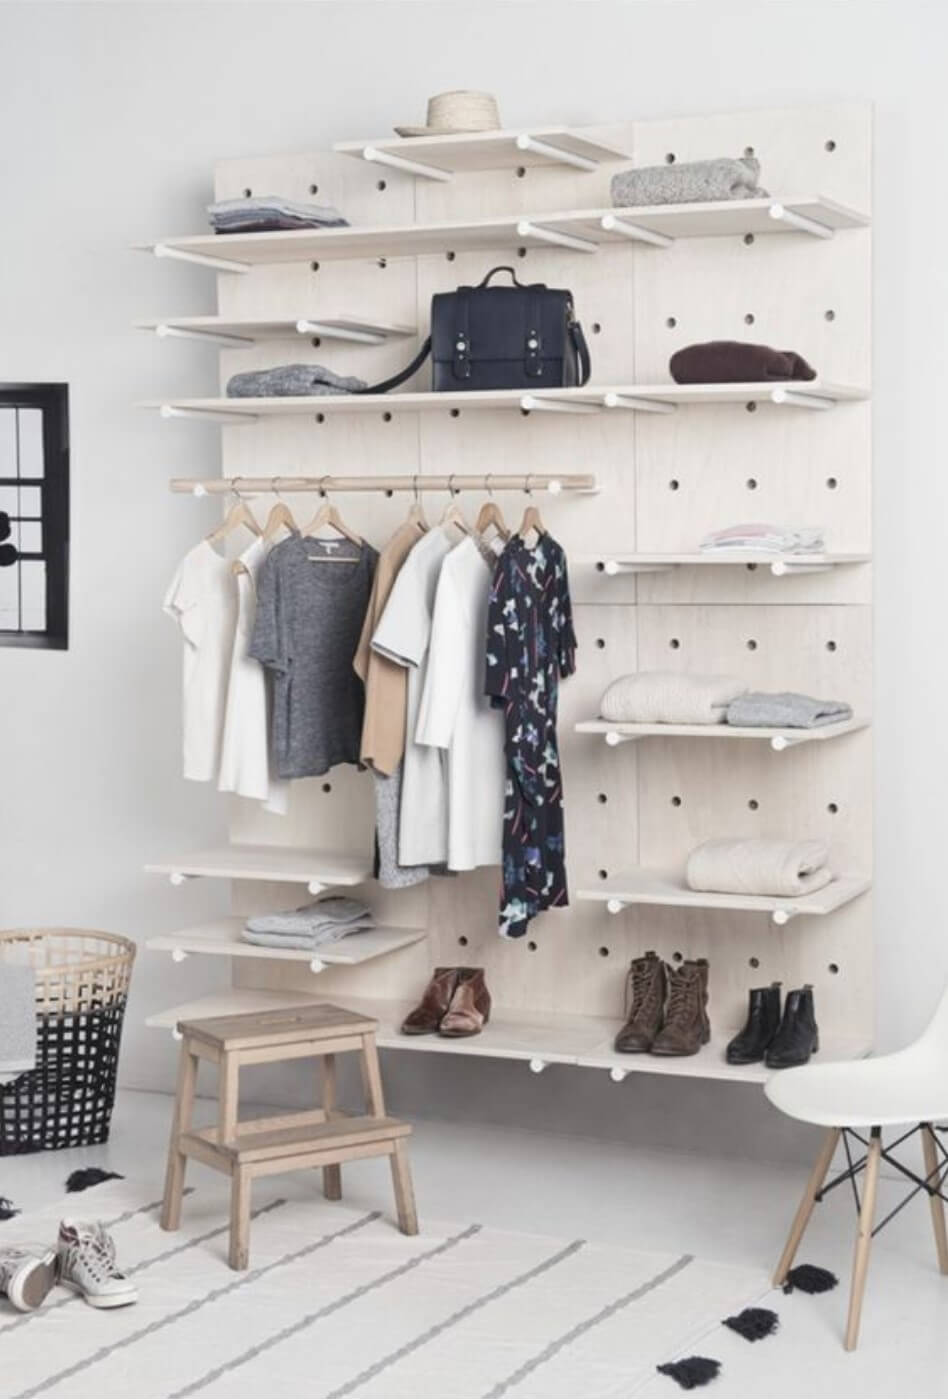 Wardrobe in white tone made with wood, fixed to the wall